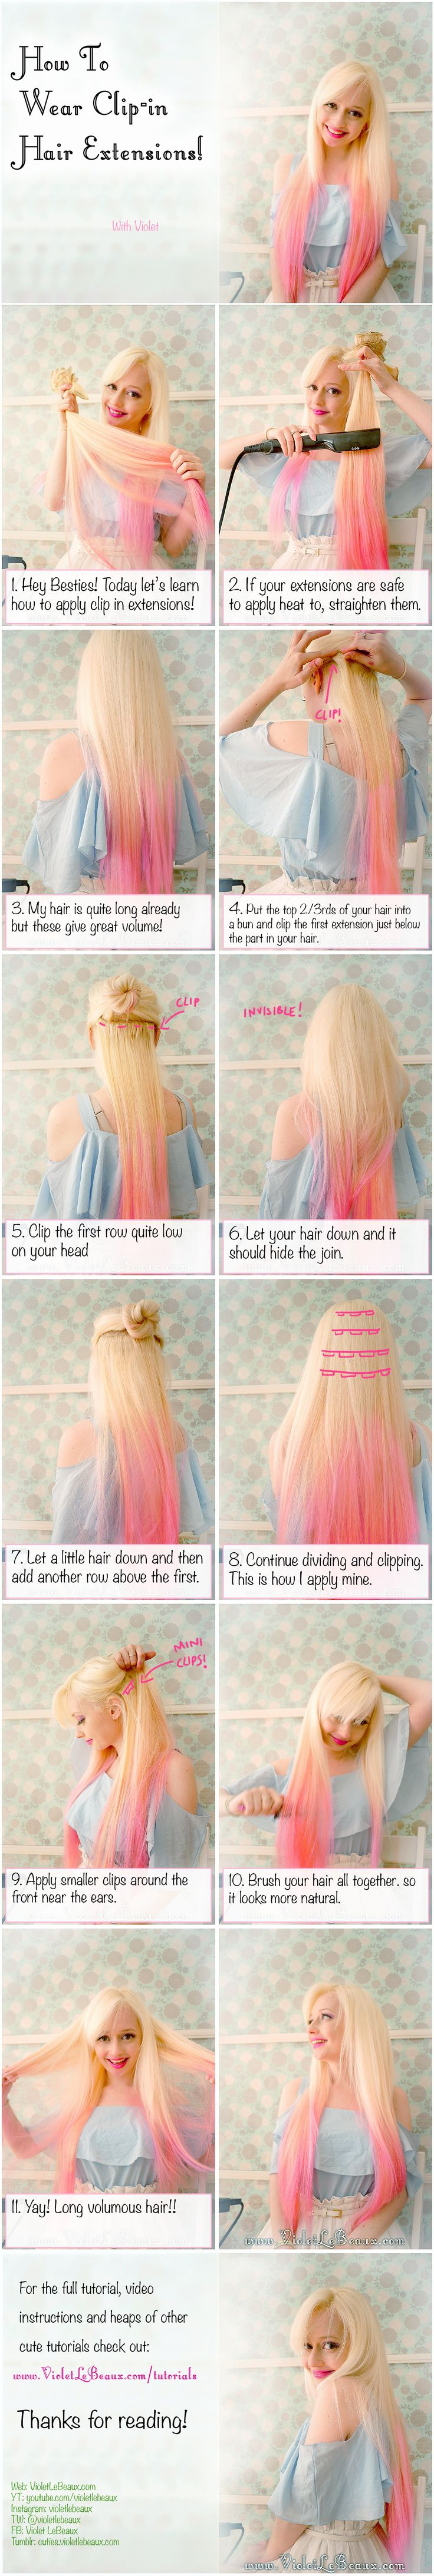 How To Wear Clip in Hair Extensions | Violet LeBeaux- Cute Free Craft Tutorials